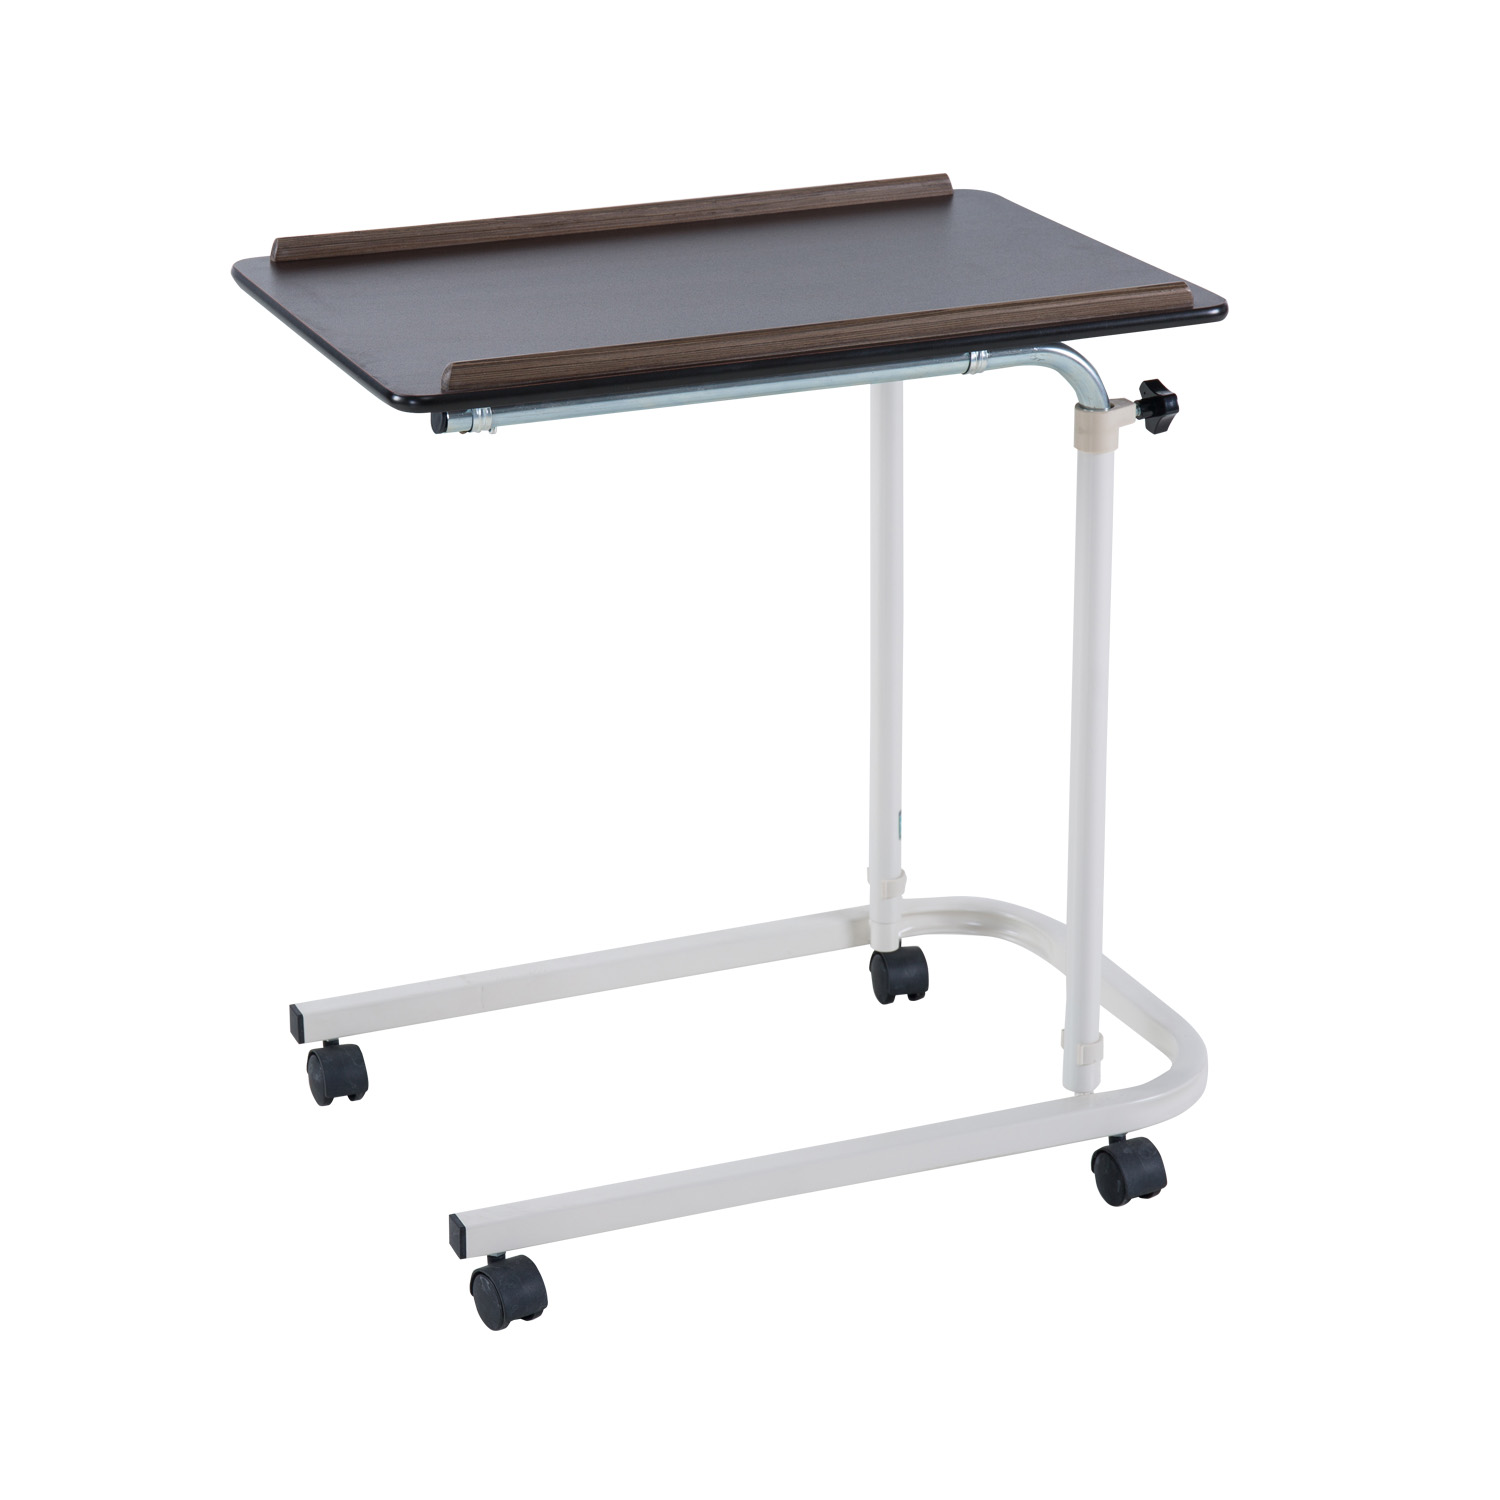 wood hospital laptop bed table standing adjustable to fit bed